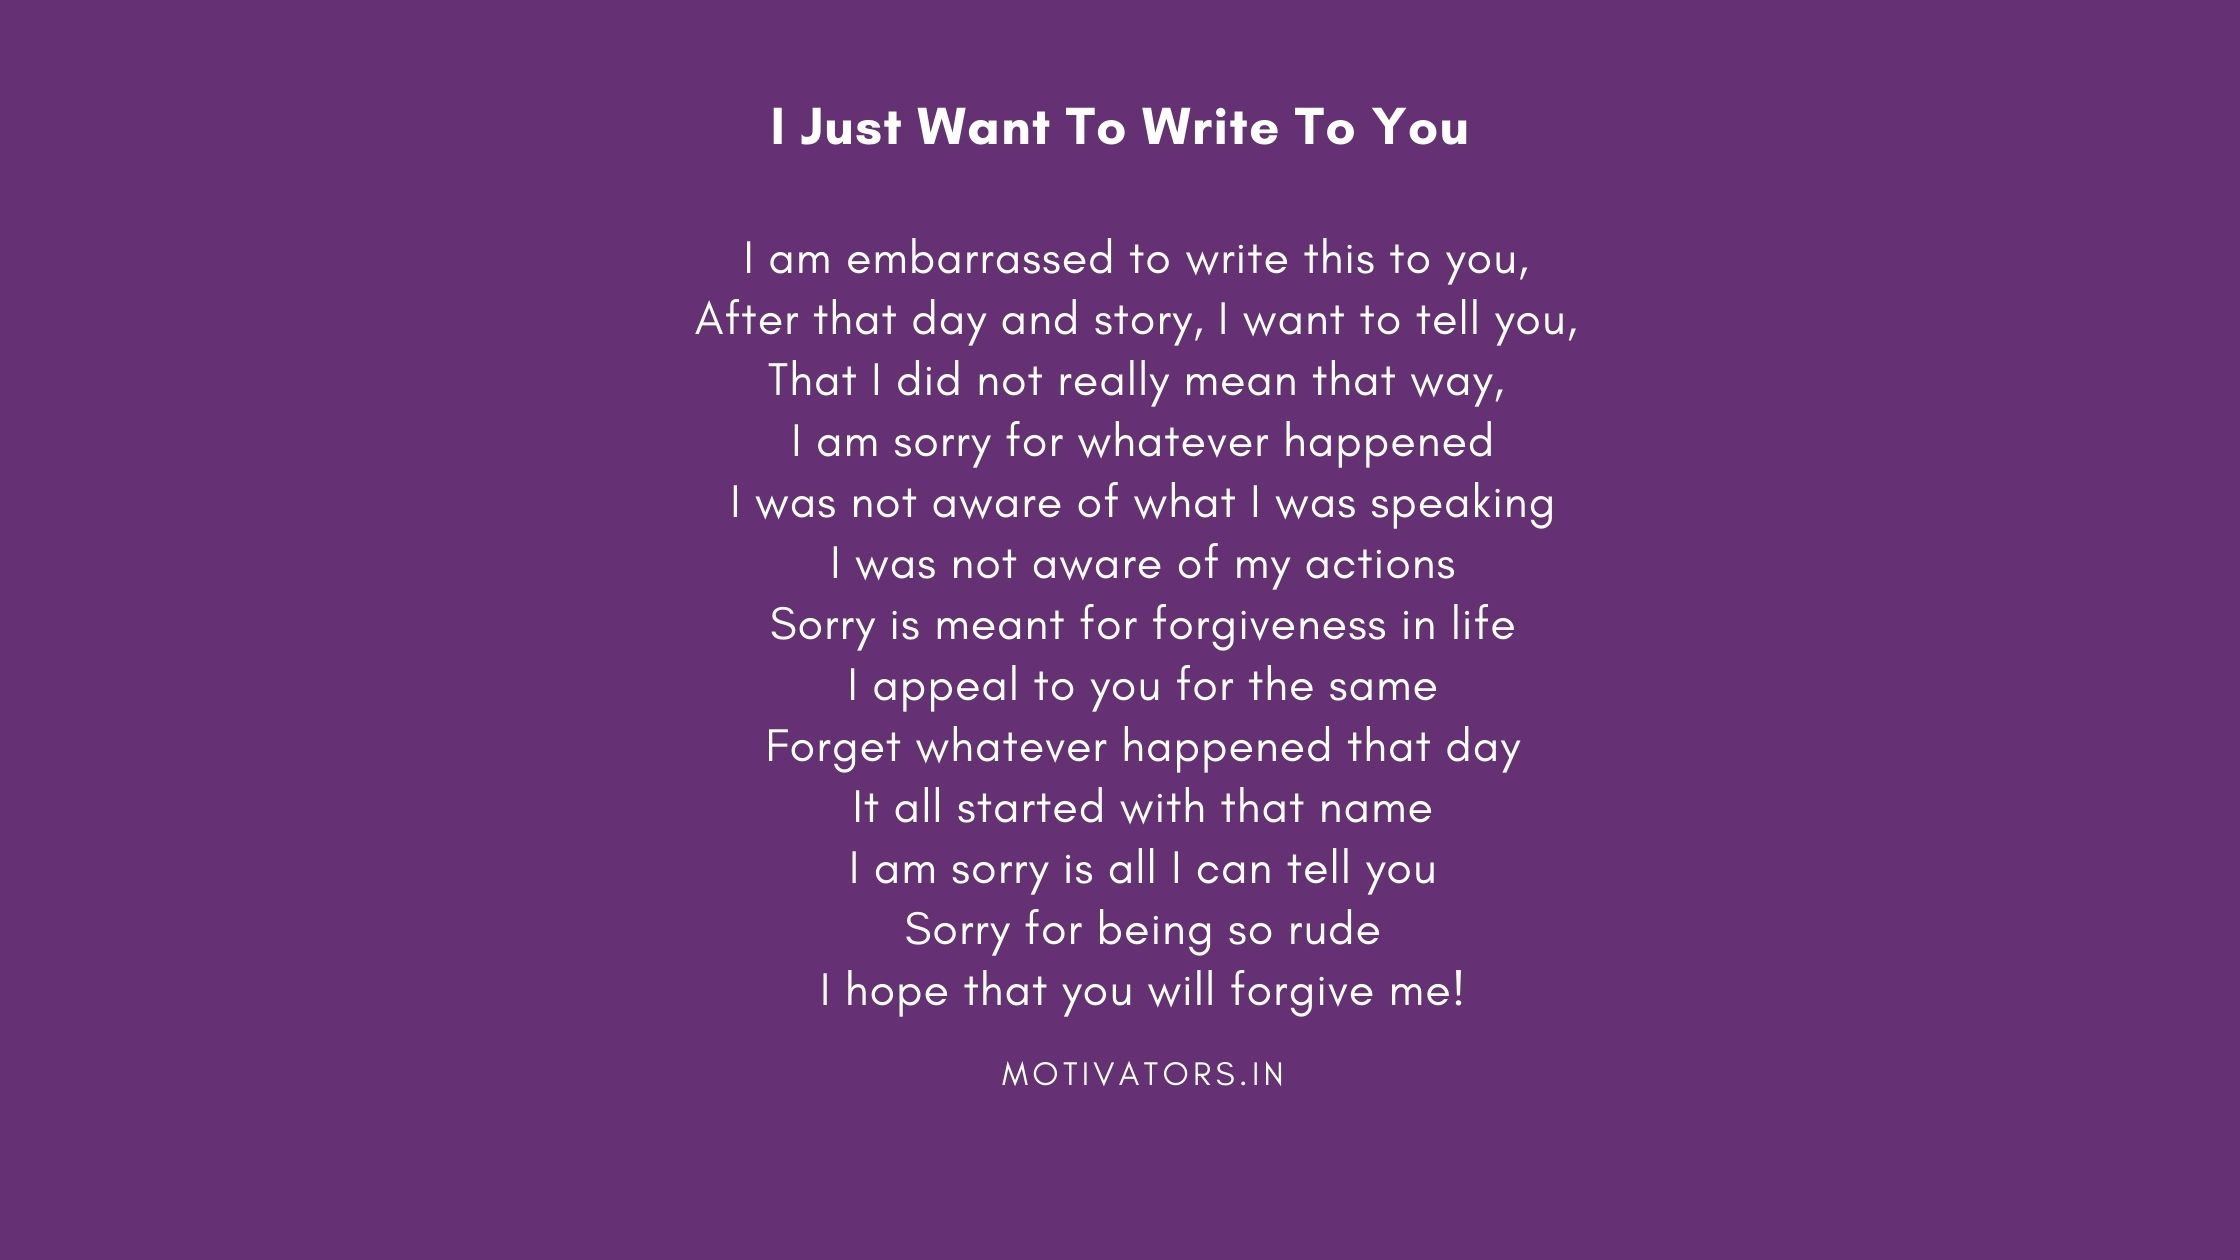 I Just Want To Write To You